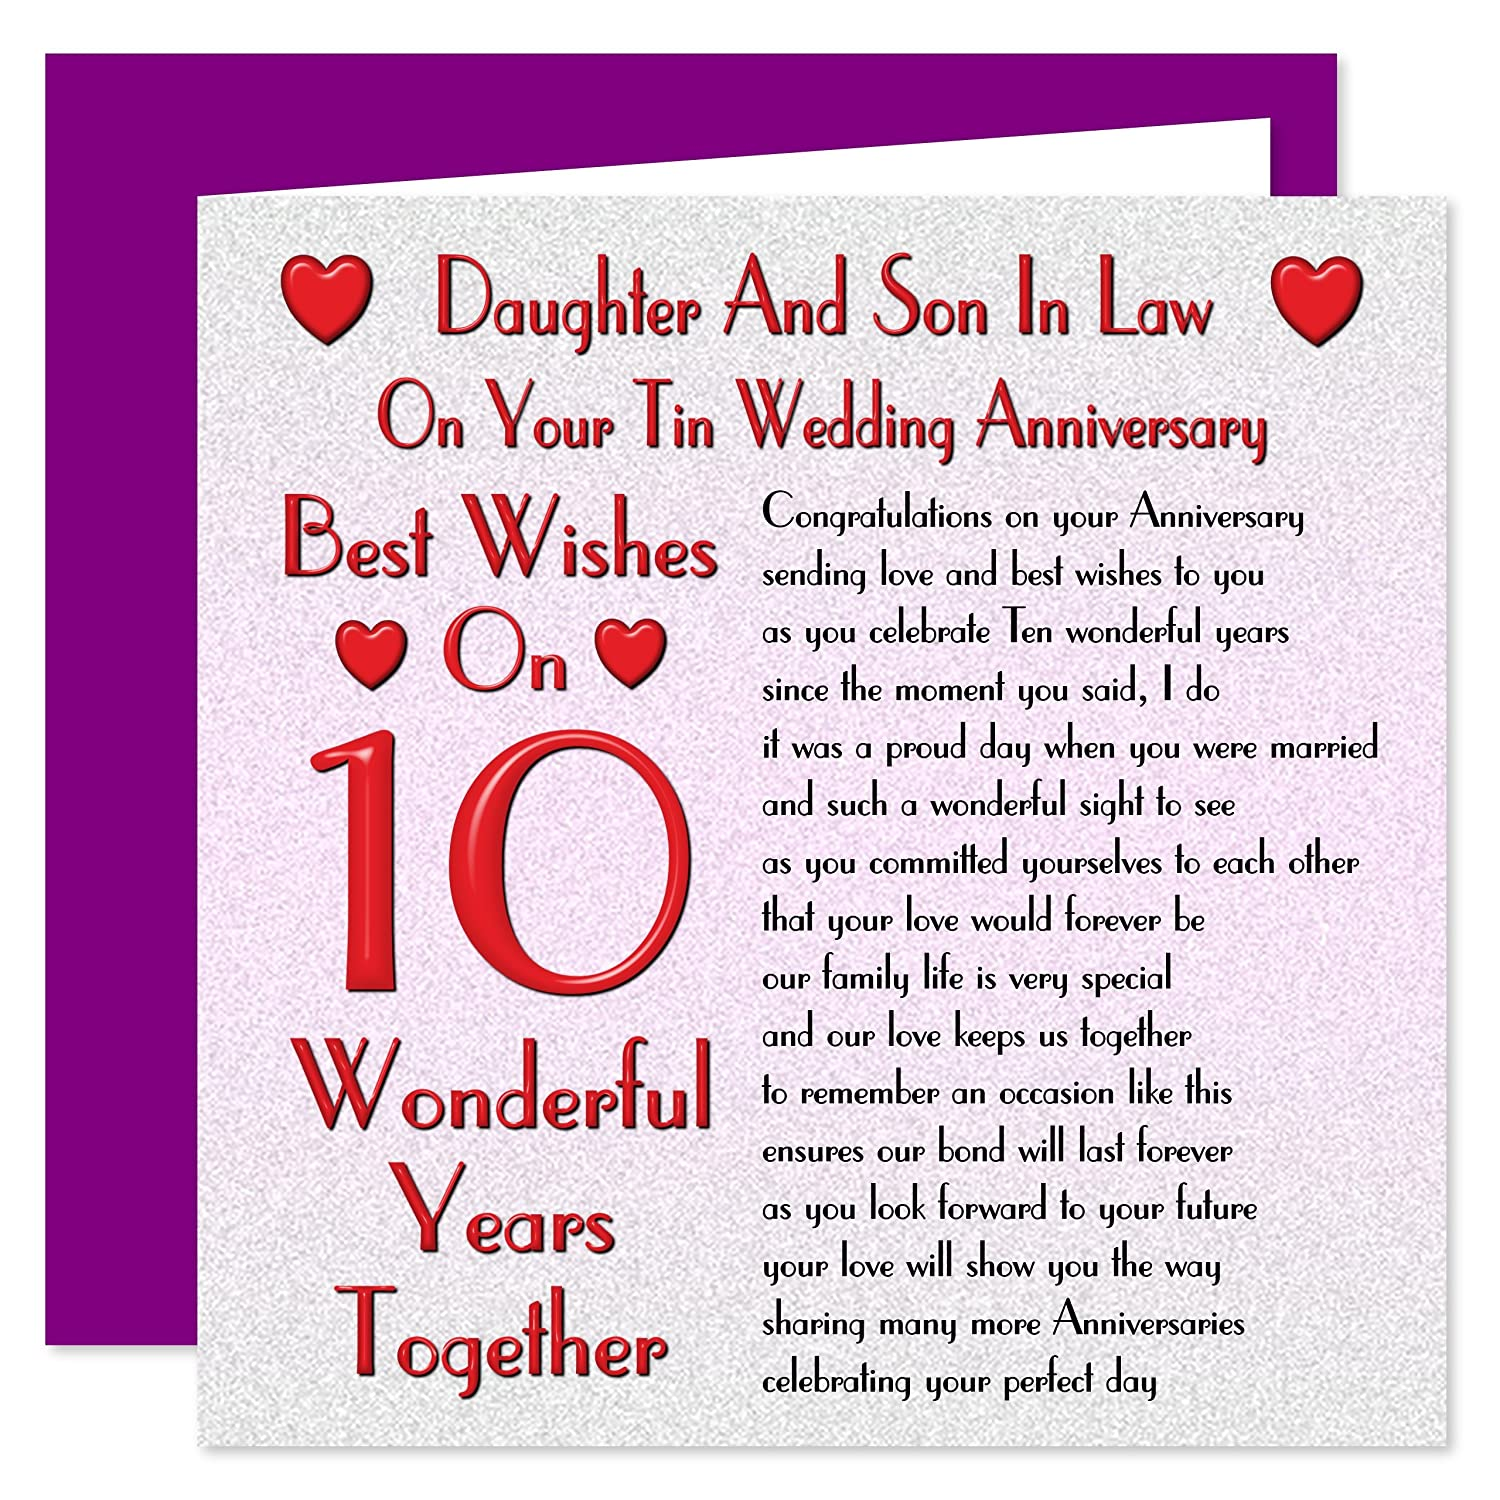 Daughter Son In Law 10th Wedding Anniversary Card On Your Tin